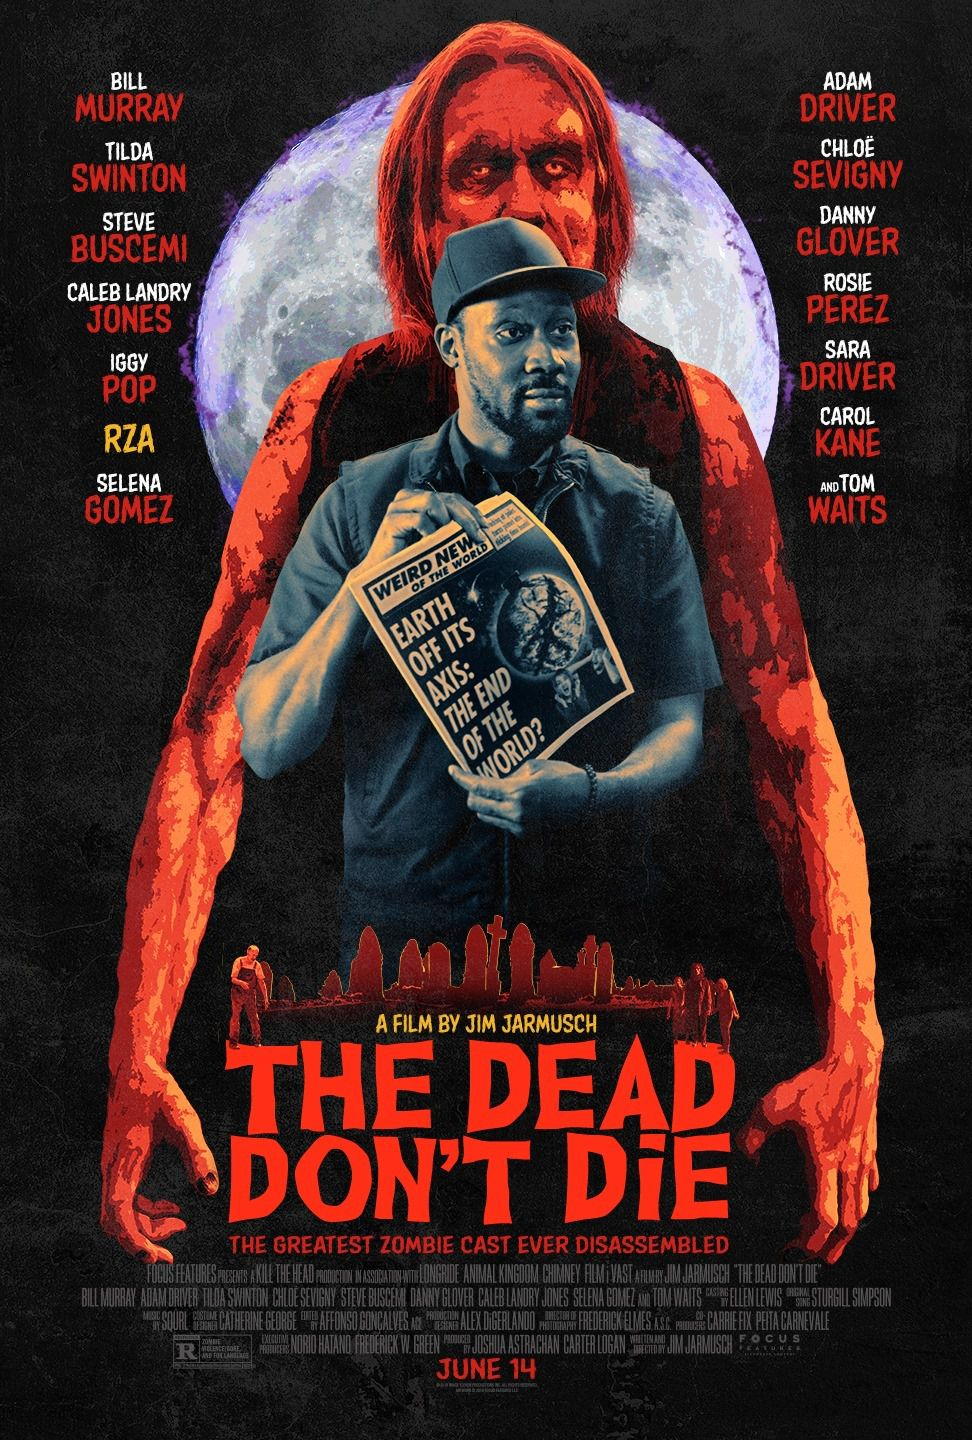 The Dead Don't Die 2019 RZA